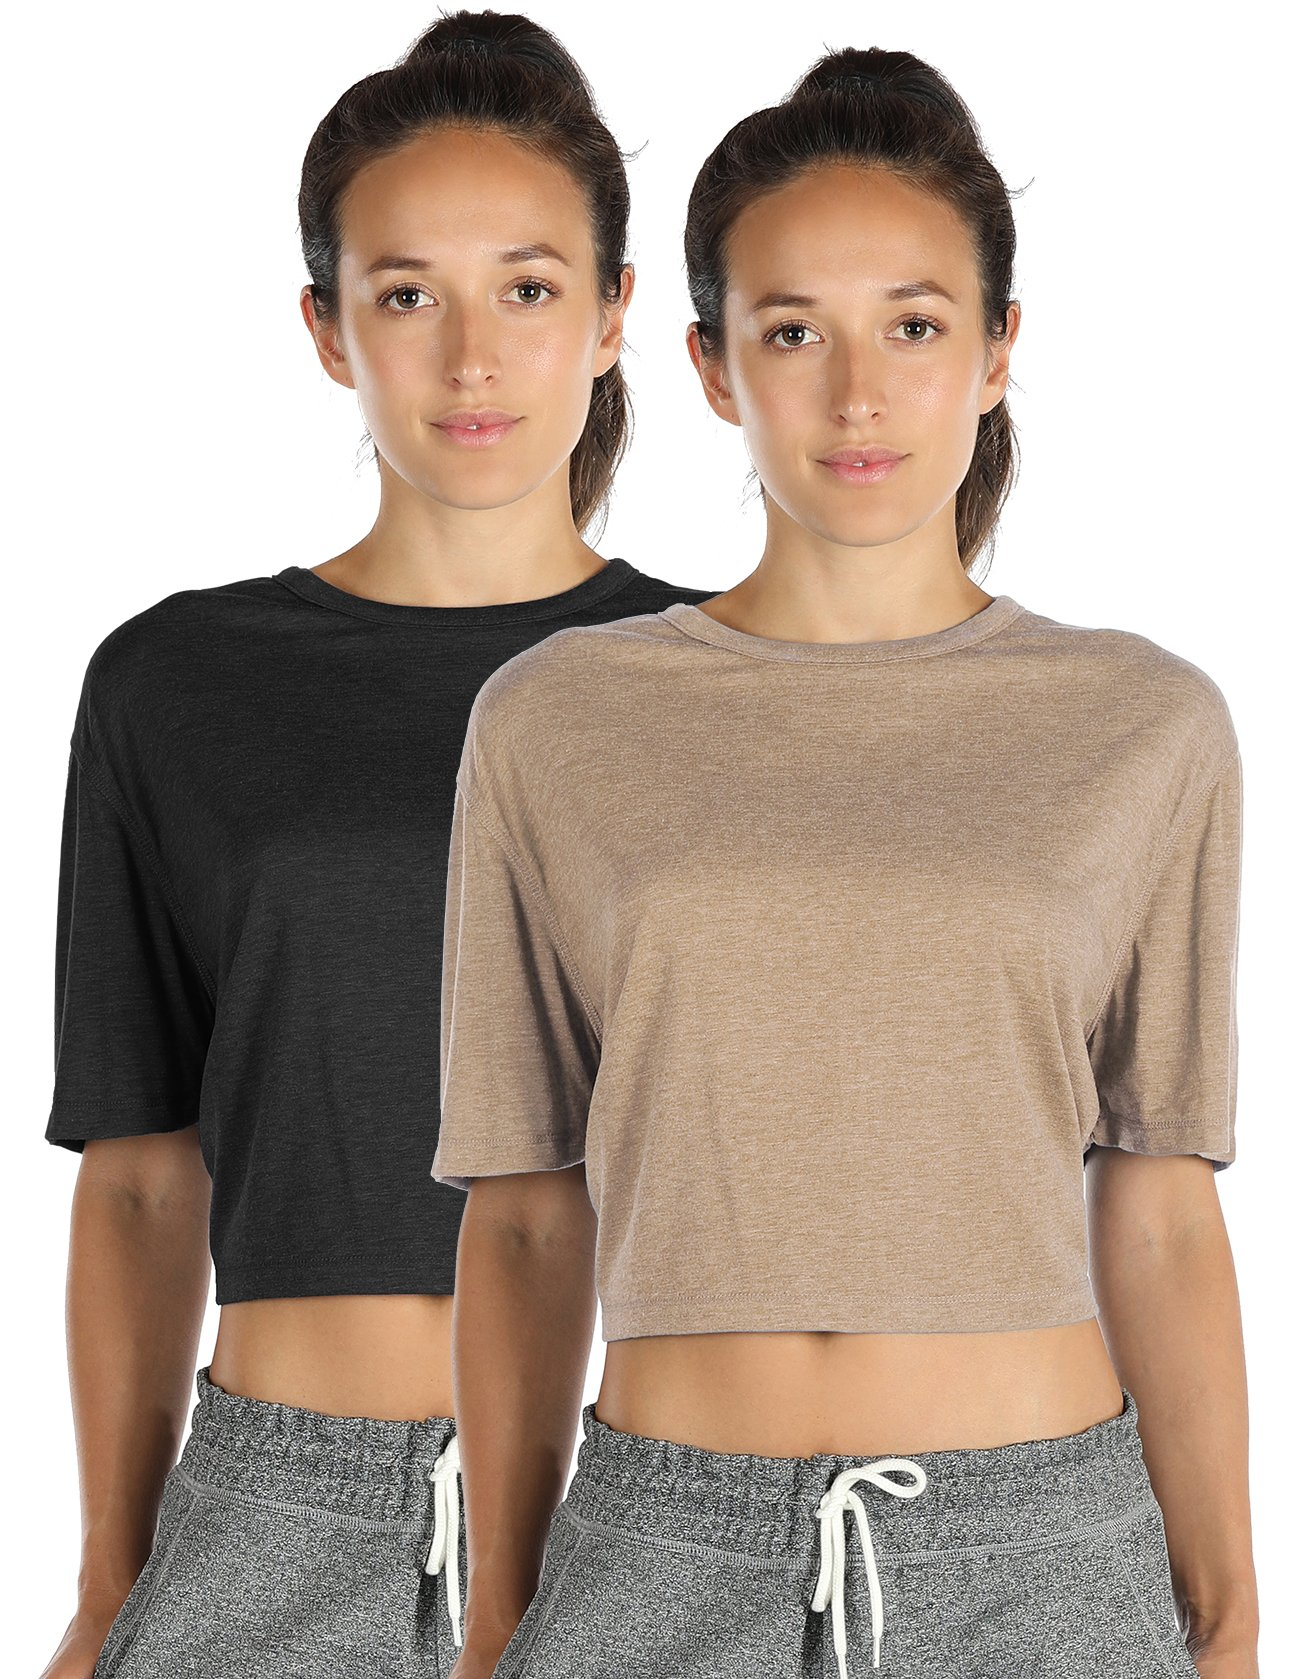 icyzone Open Back Workout Top Shirts - Yoga t-Shirts Activewear Exercise Crop Tops for Women (S, Black/Beige)